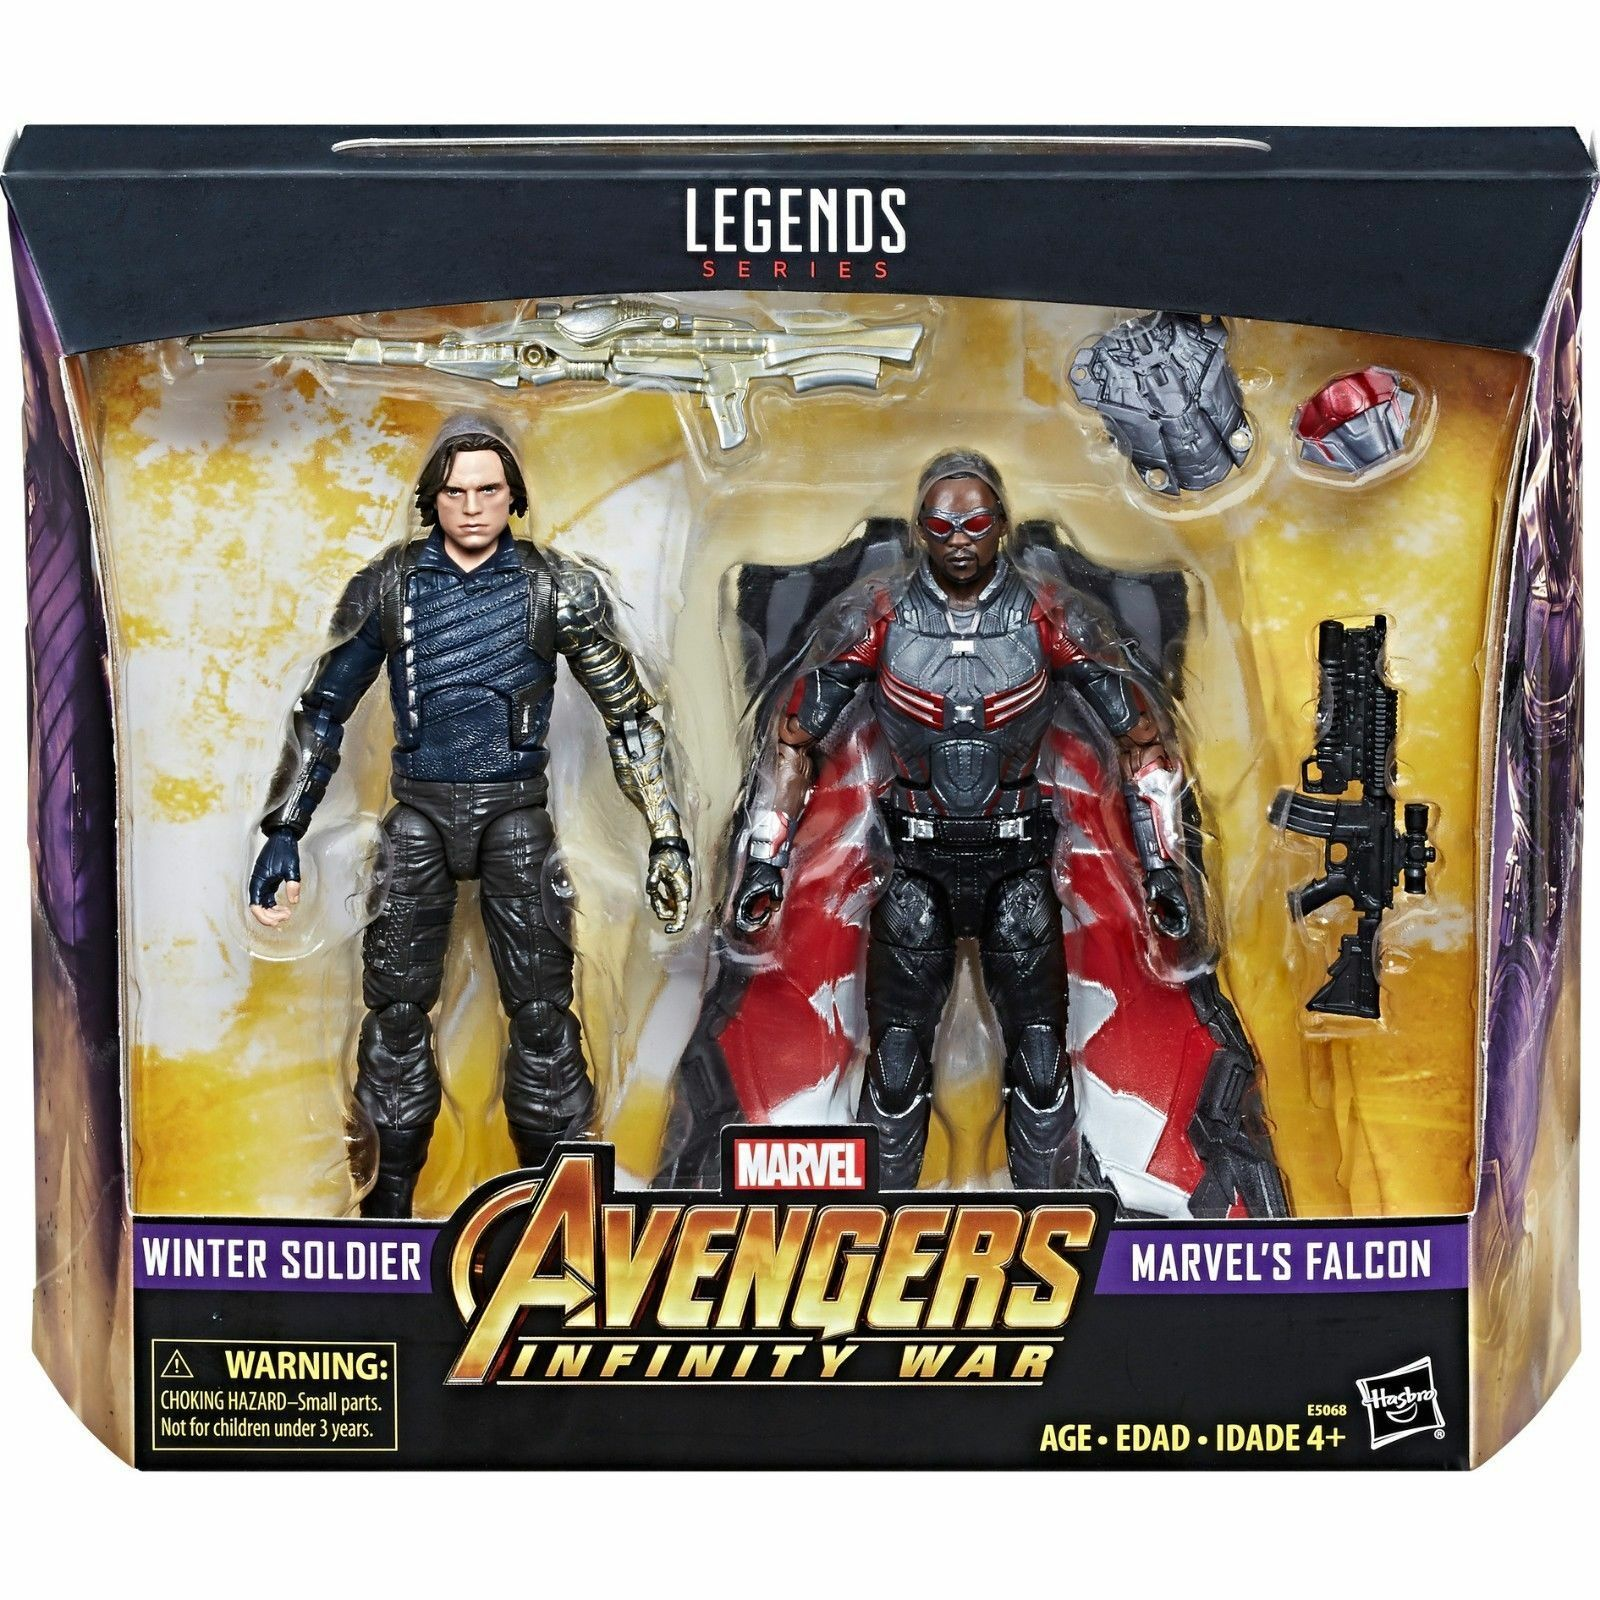 In-Hand  MARVEL LEGENDS Avengers 3 Infinity GUERRA SOLDATO D'INVERNO Falcon Set UK